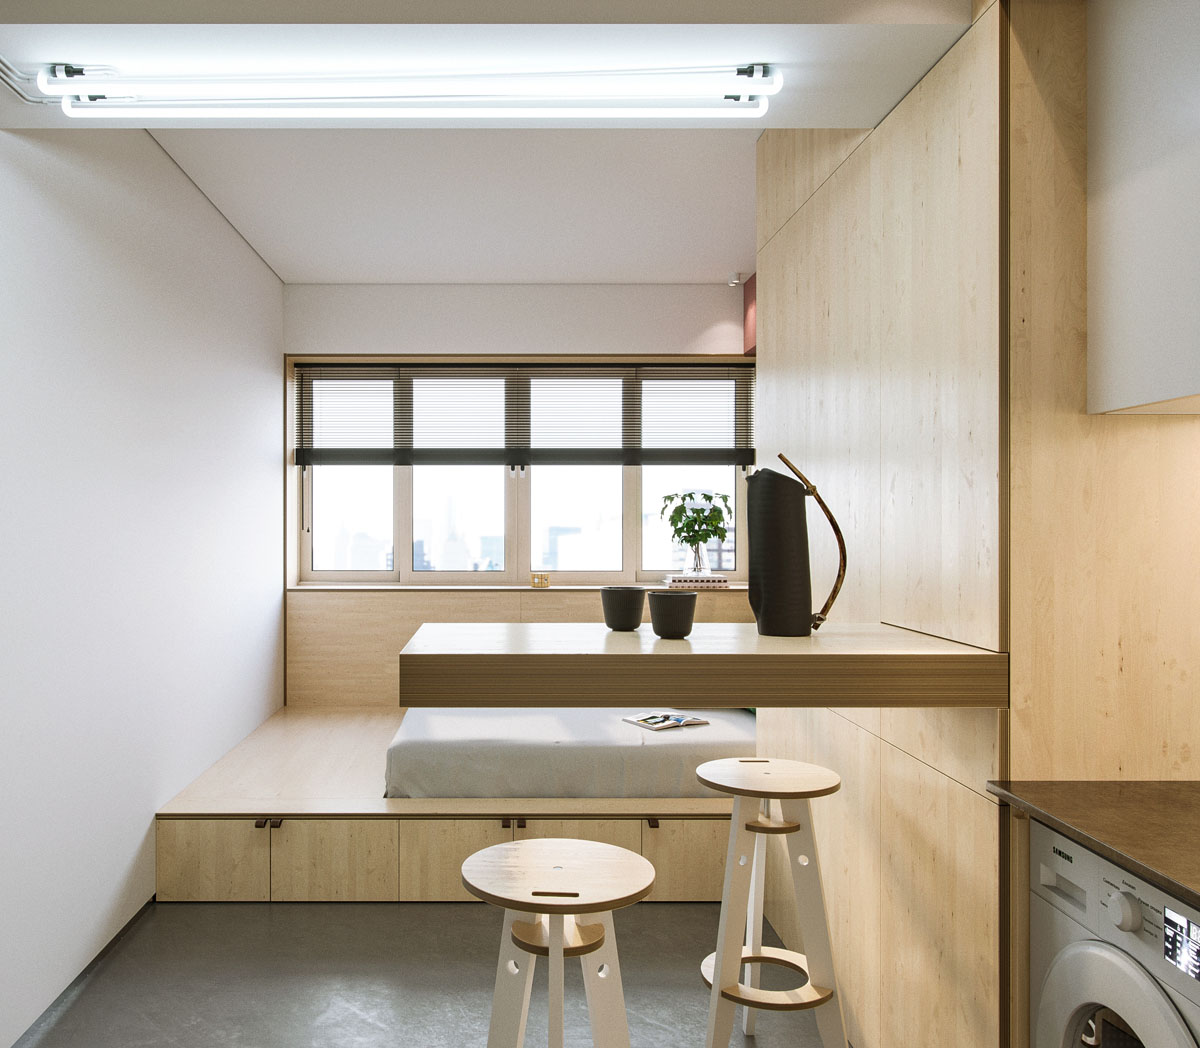 Find Efficiency Apartments: Super Compact Spaces: A Minimalist Studio Apartment Under